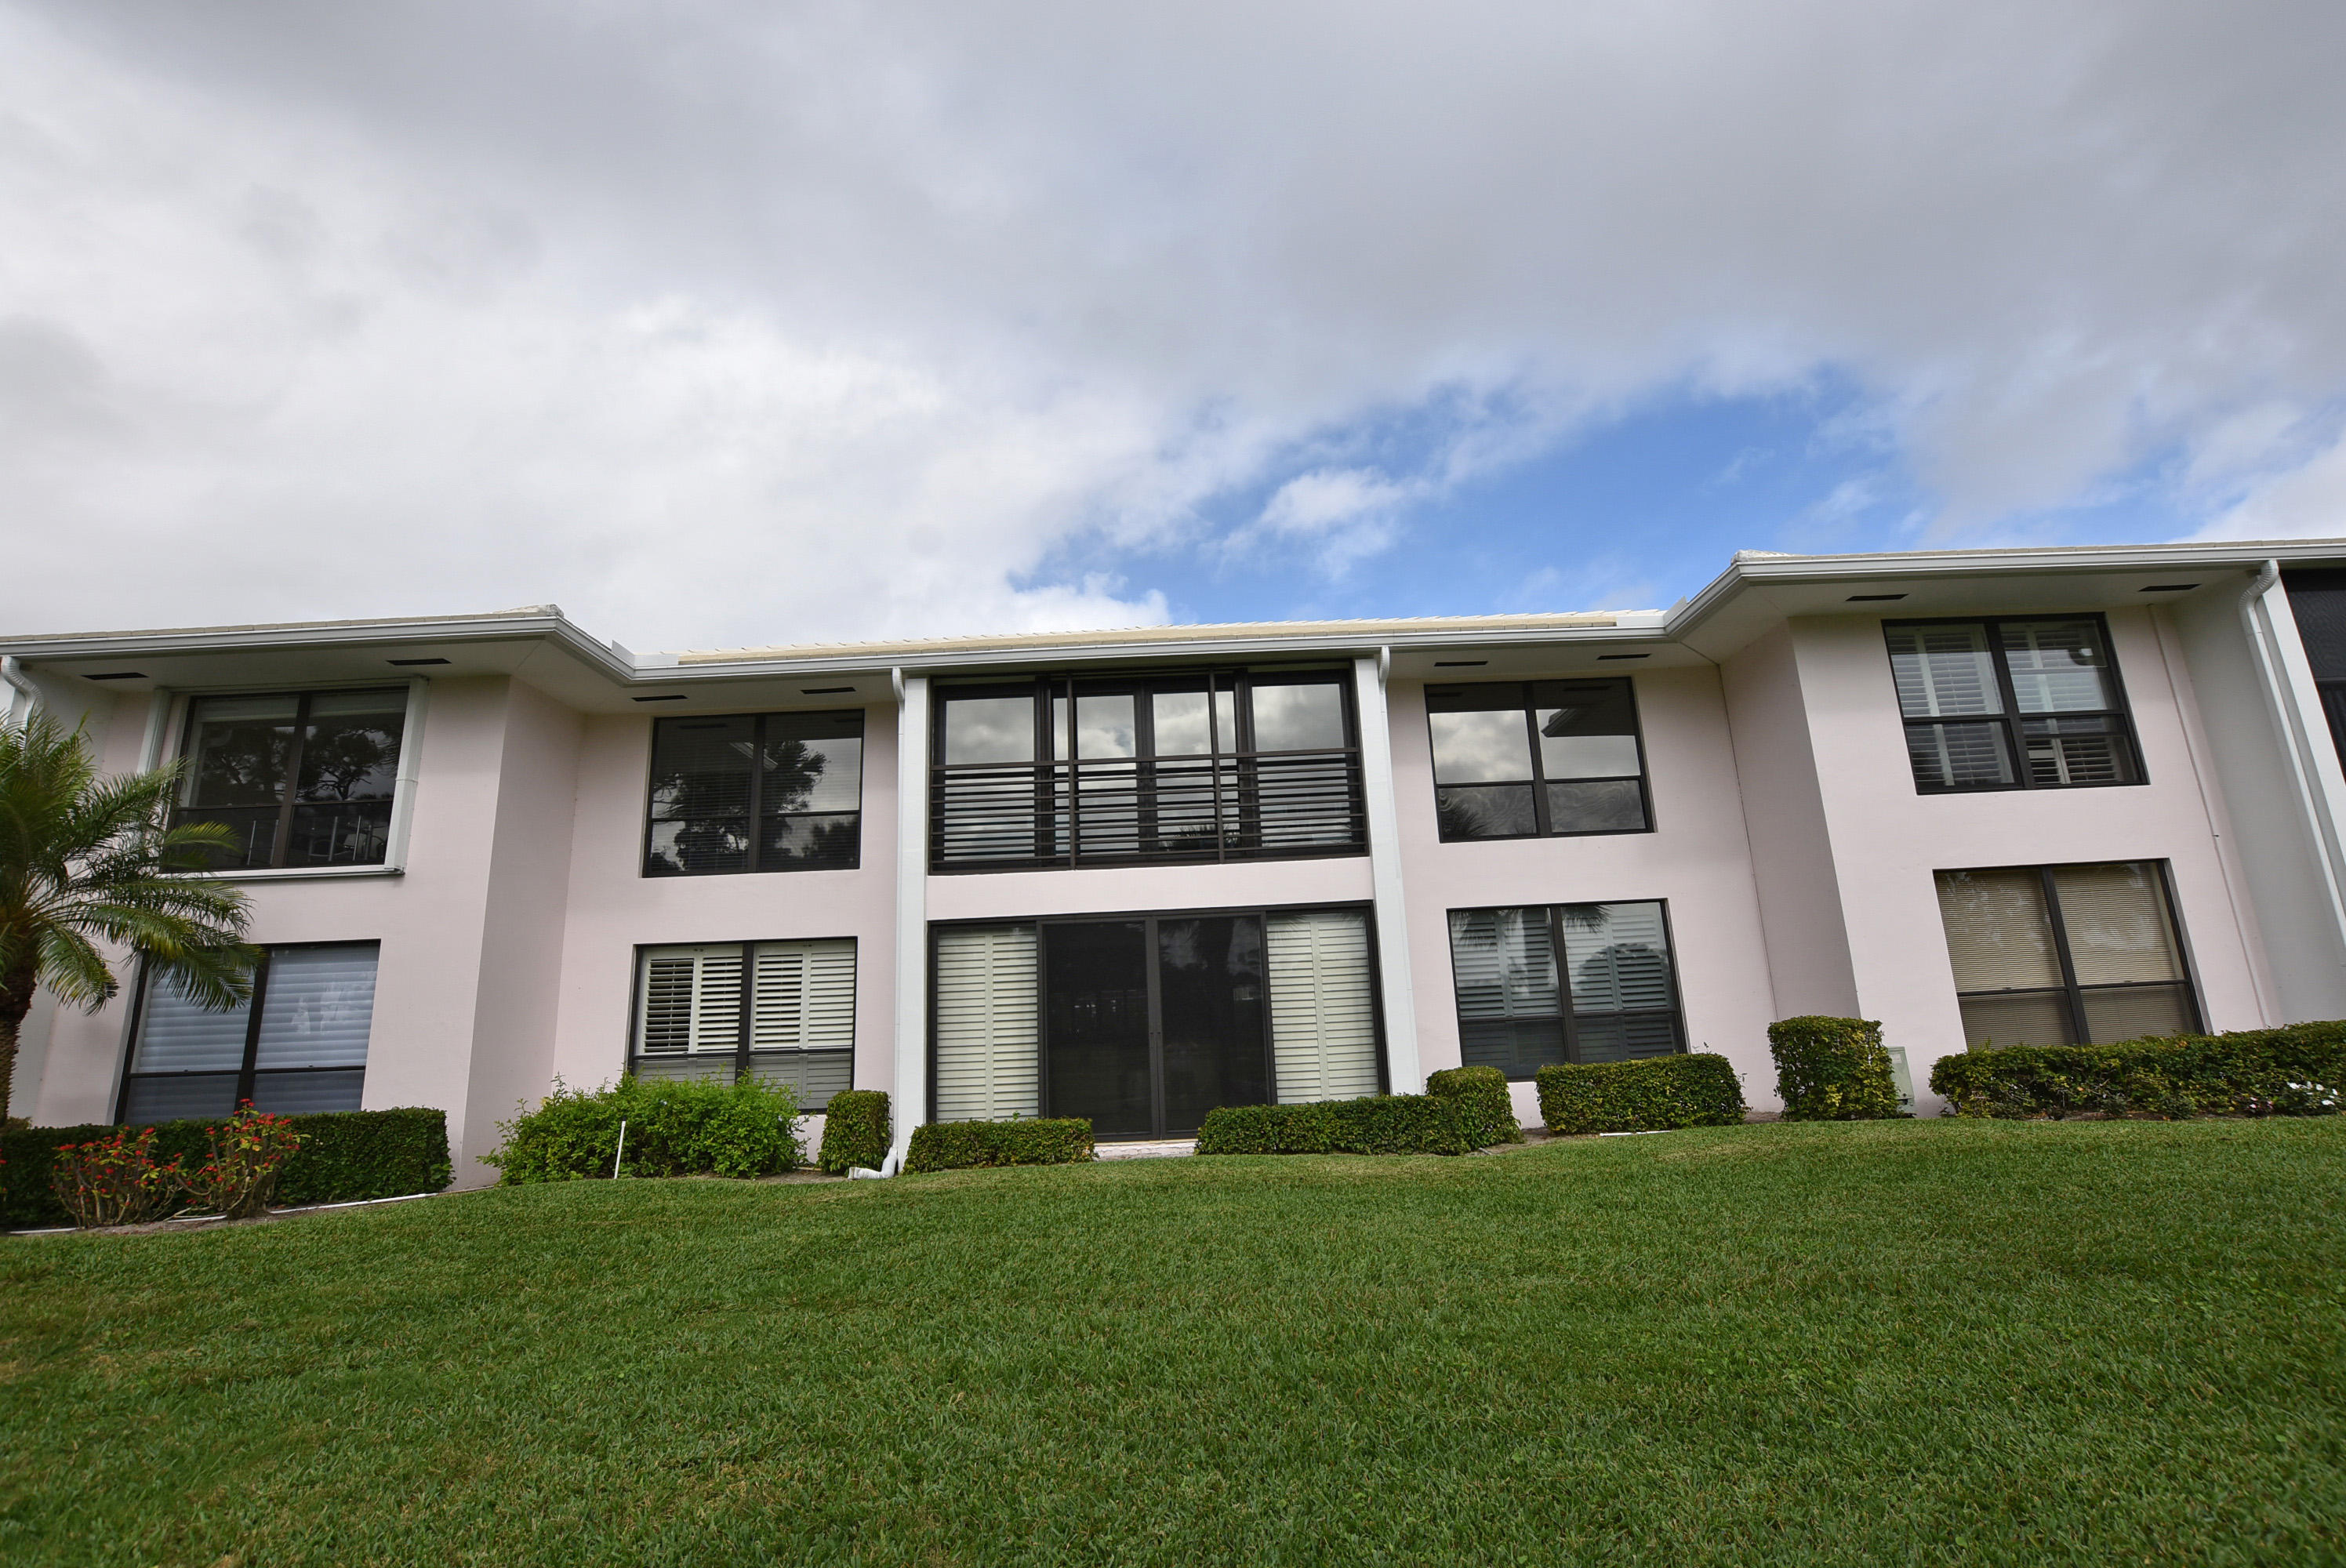 3804 Quail Ridge Drive, Boynton Beach, Florida 33436, 3 Bedrooms Bedrooms, ,2 BathroomsBathrooms,Condo/Coop,For Sale,Blue Heron,Quail Ridge,2,RX-10463844